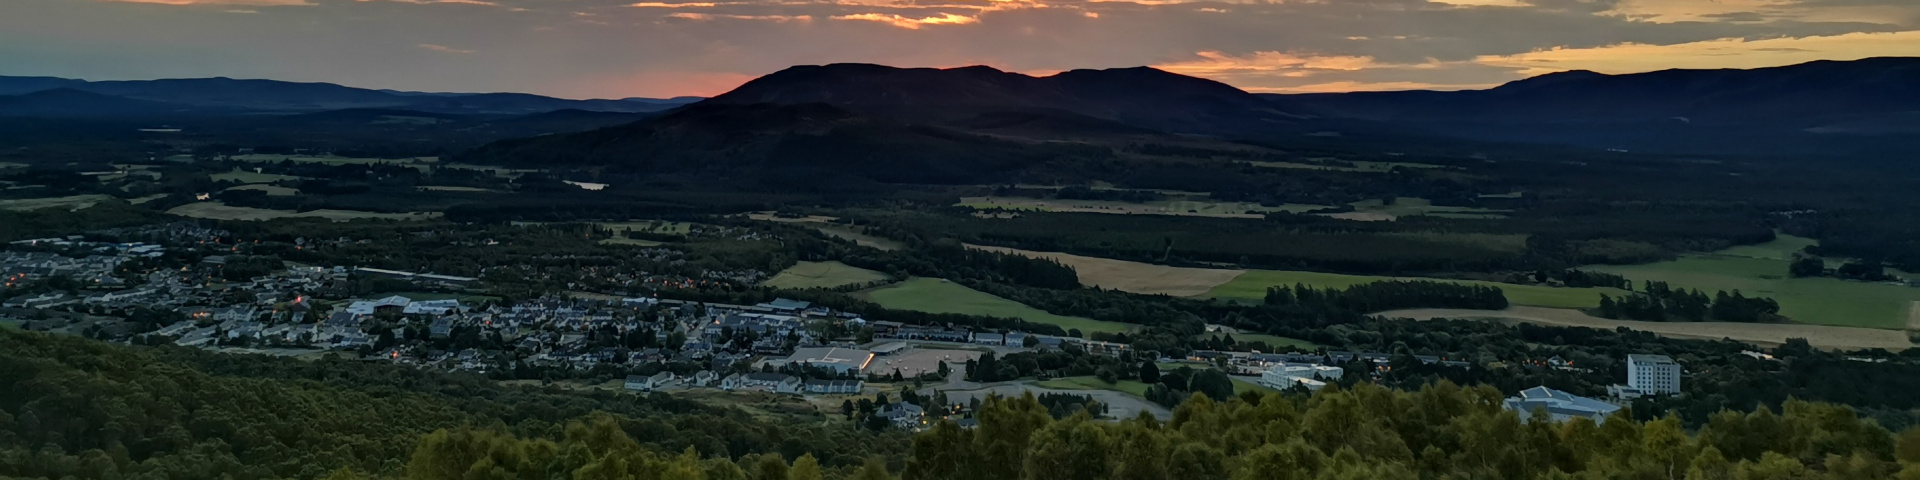 Sunrise over Aviemore and the Cairngorms mountains